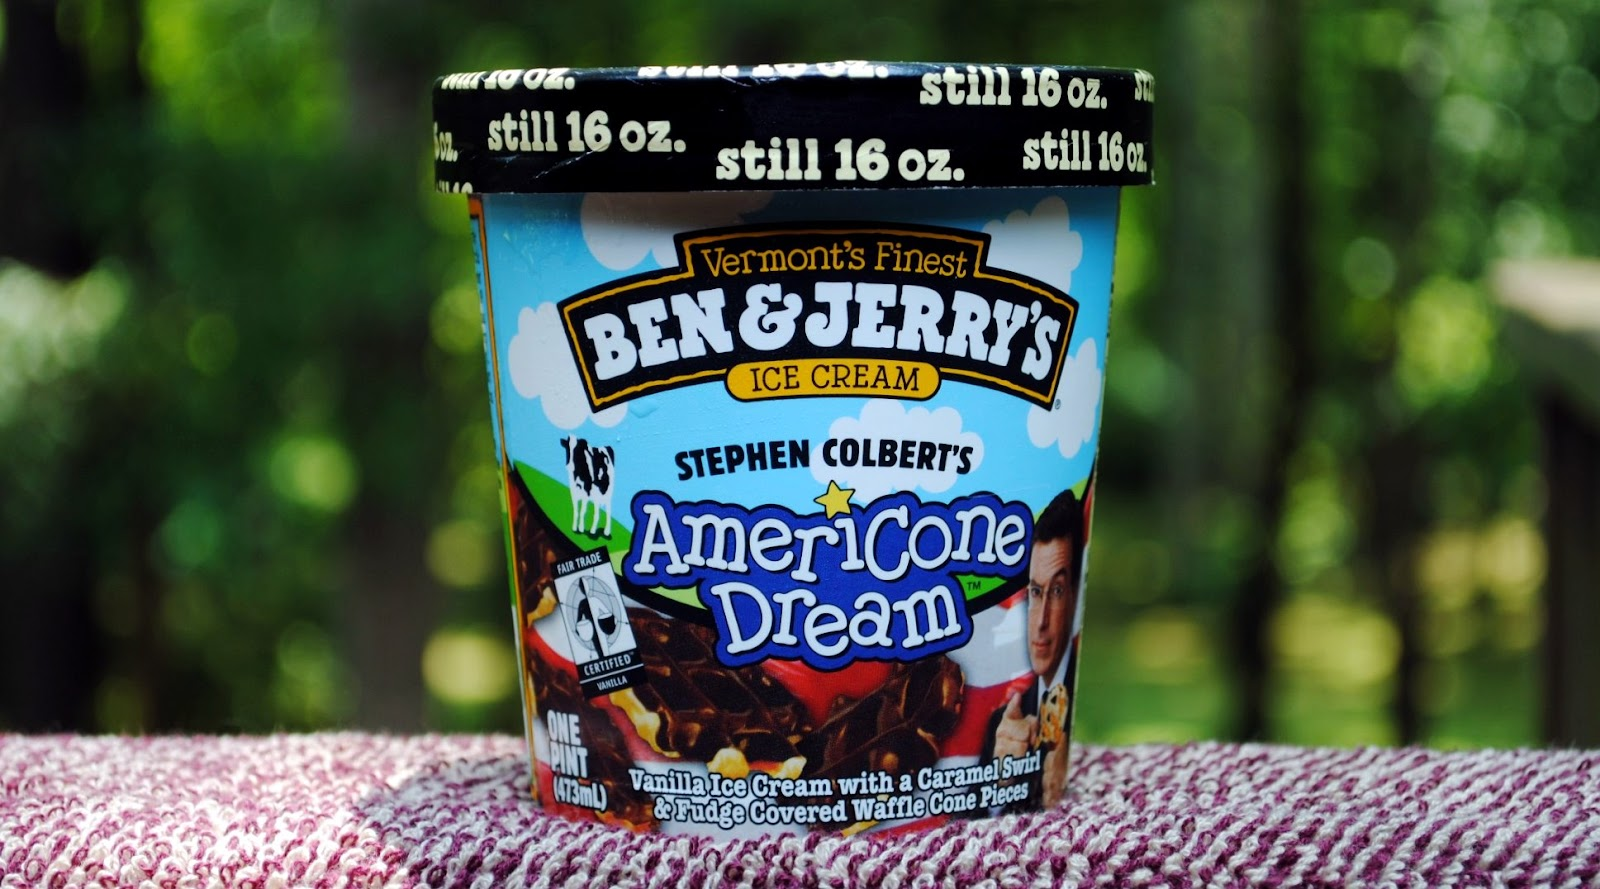 Food And Ice Cream Recipes Review Ben Jerry S Americone Dream Vanilla ice cream bars with caramel swirls and fudge covered waffle cone pieces, covered in dark chocolatey coating with waffle cone pieces. food and ice cream recipes blogger